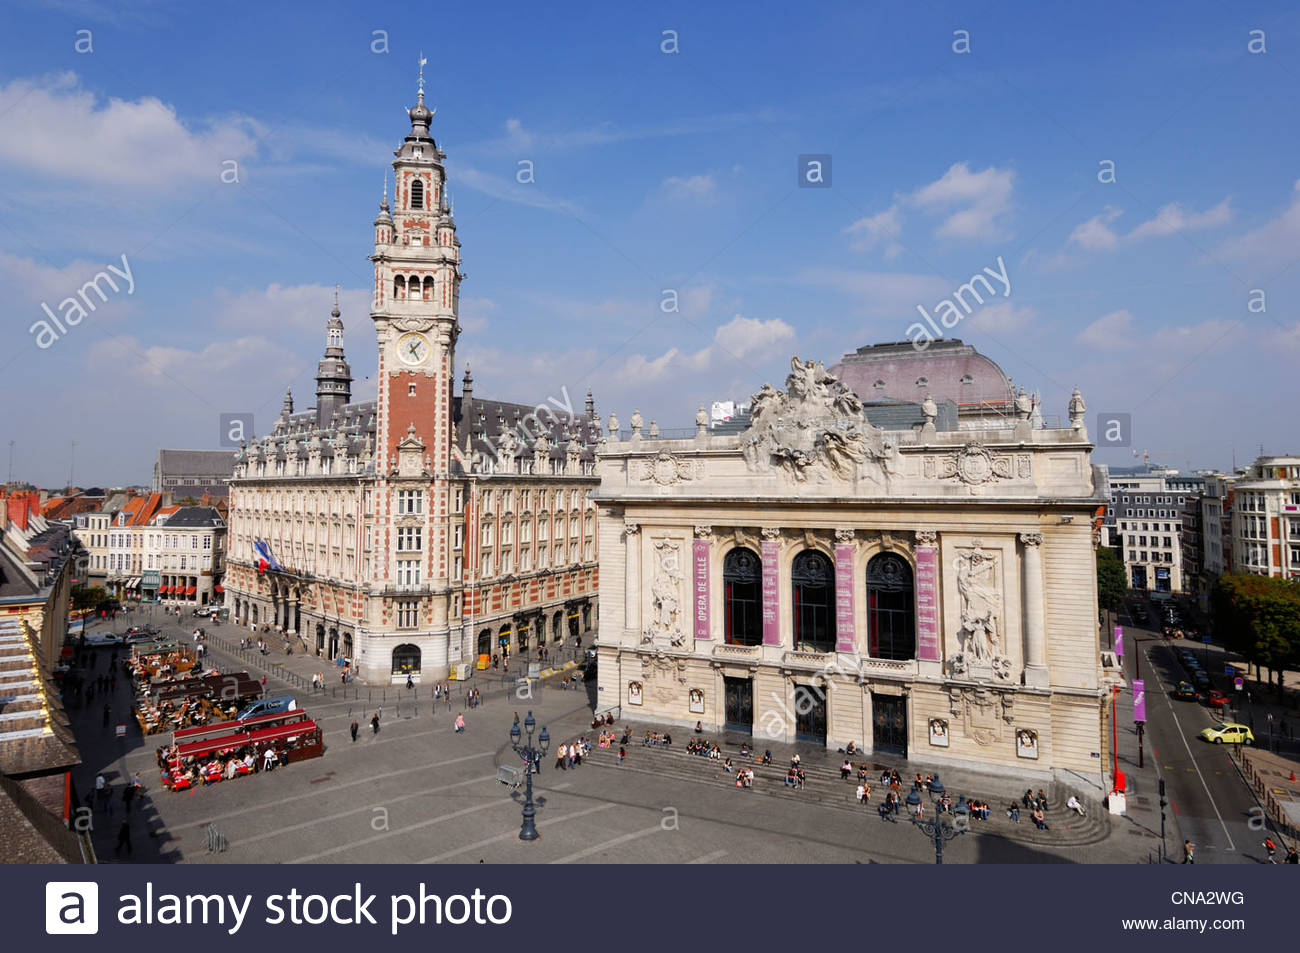 france nord lille opera and belfry of the chamber of merce and CNA2WG